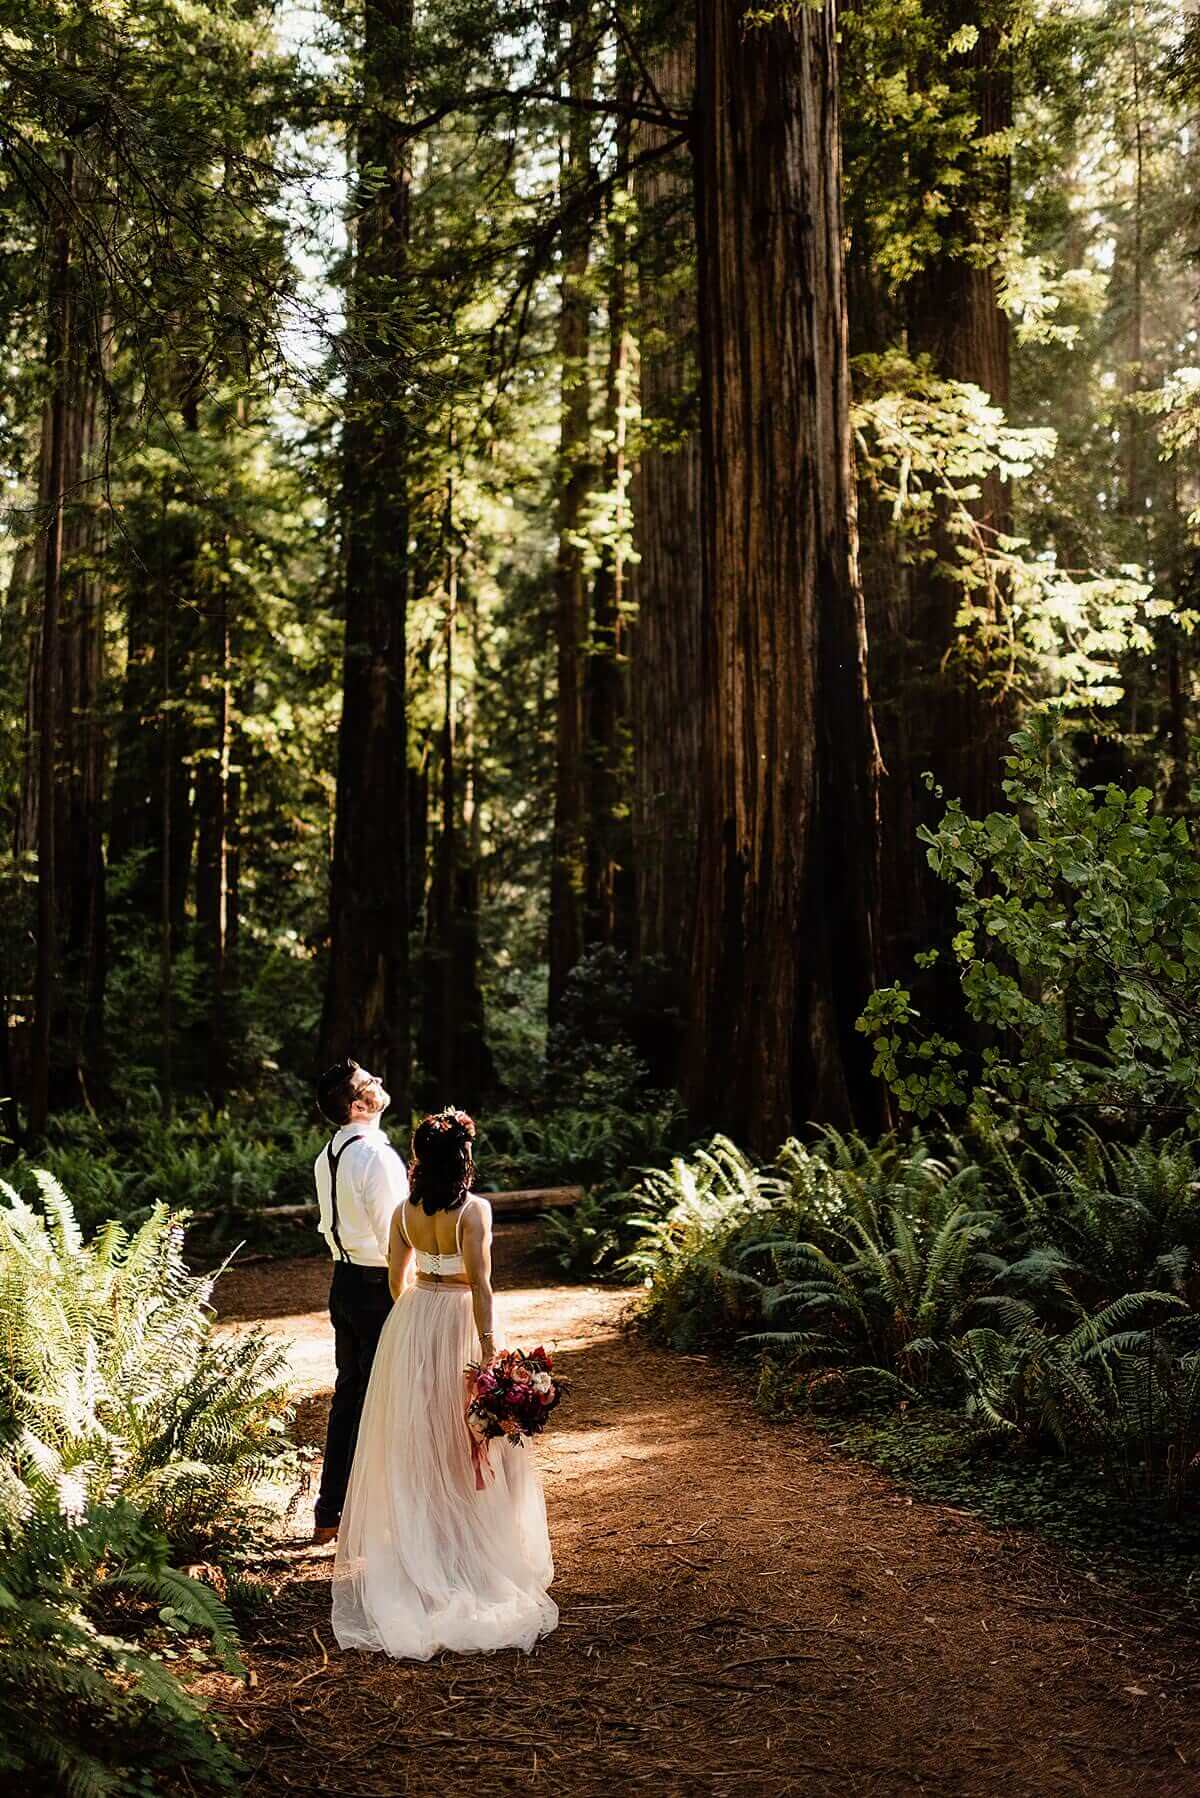 Allison-Brooks-Jedediah-Smiith-Redwoods-Adventure-Elopement-Wedding-S-Photography-Blog_0040.jpg